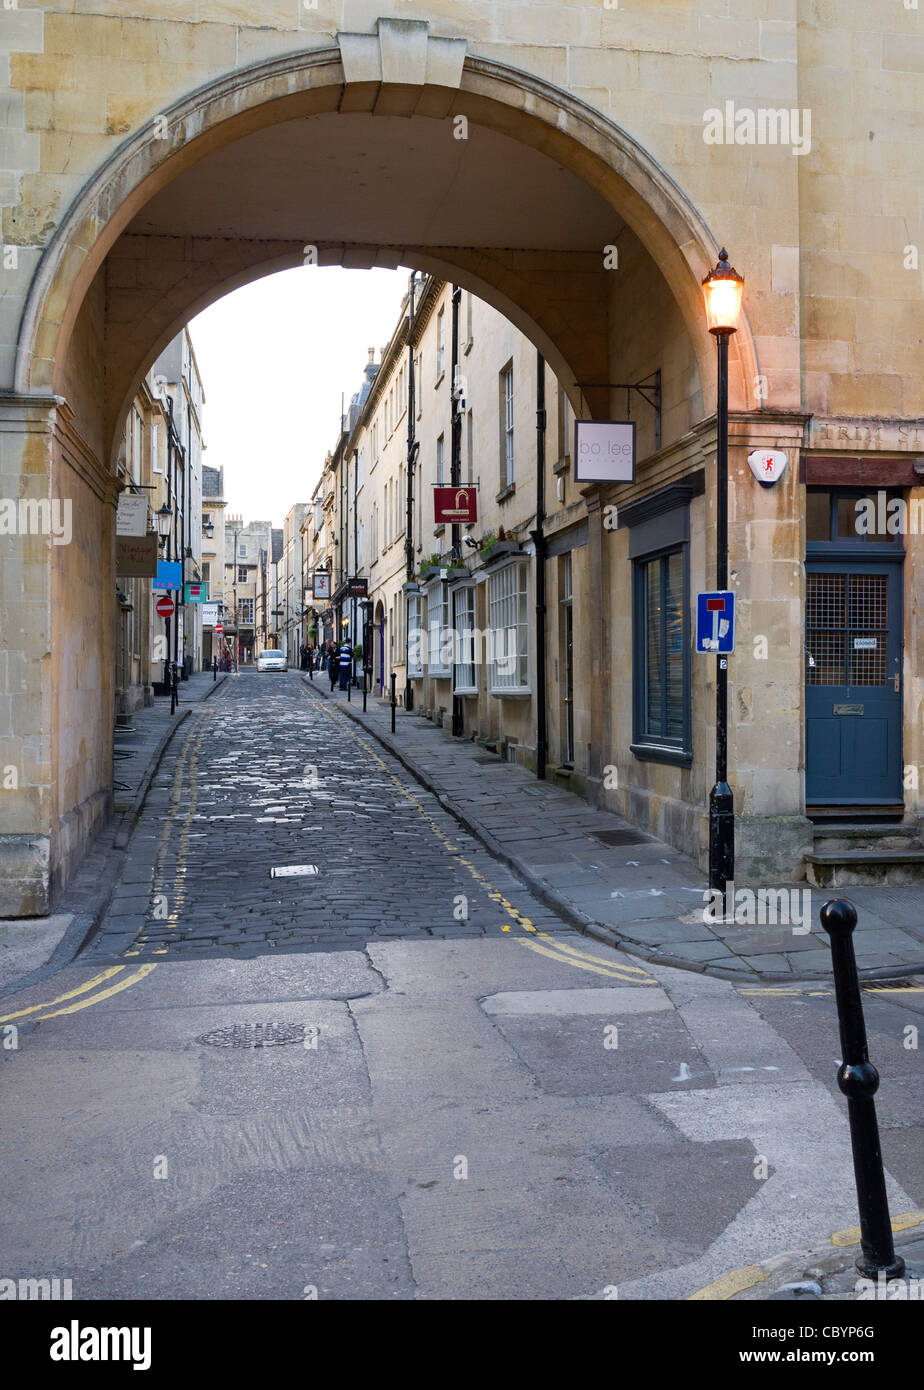 Stone arch in Trim Street, leading into Queen Street, Bath, Somerset, England, UK. - Stock Image